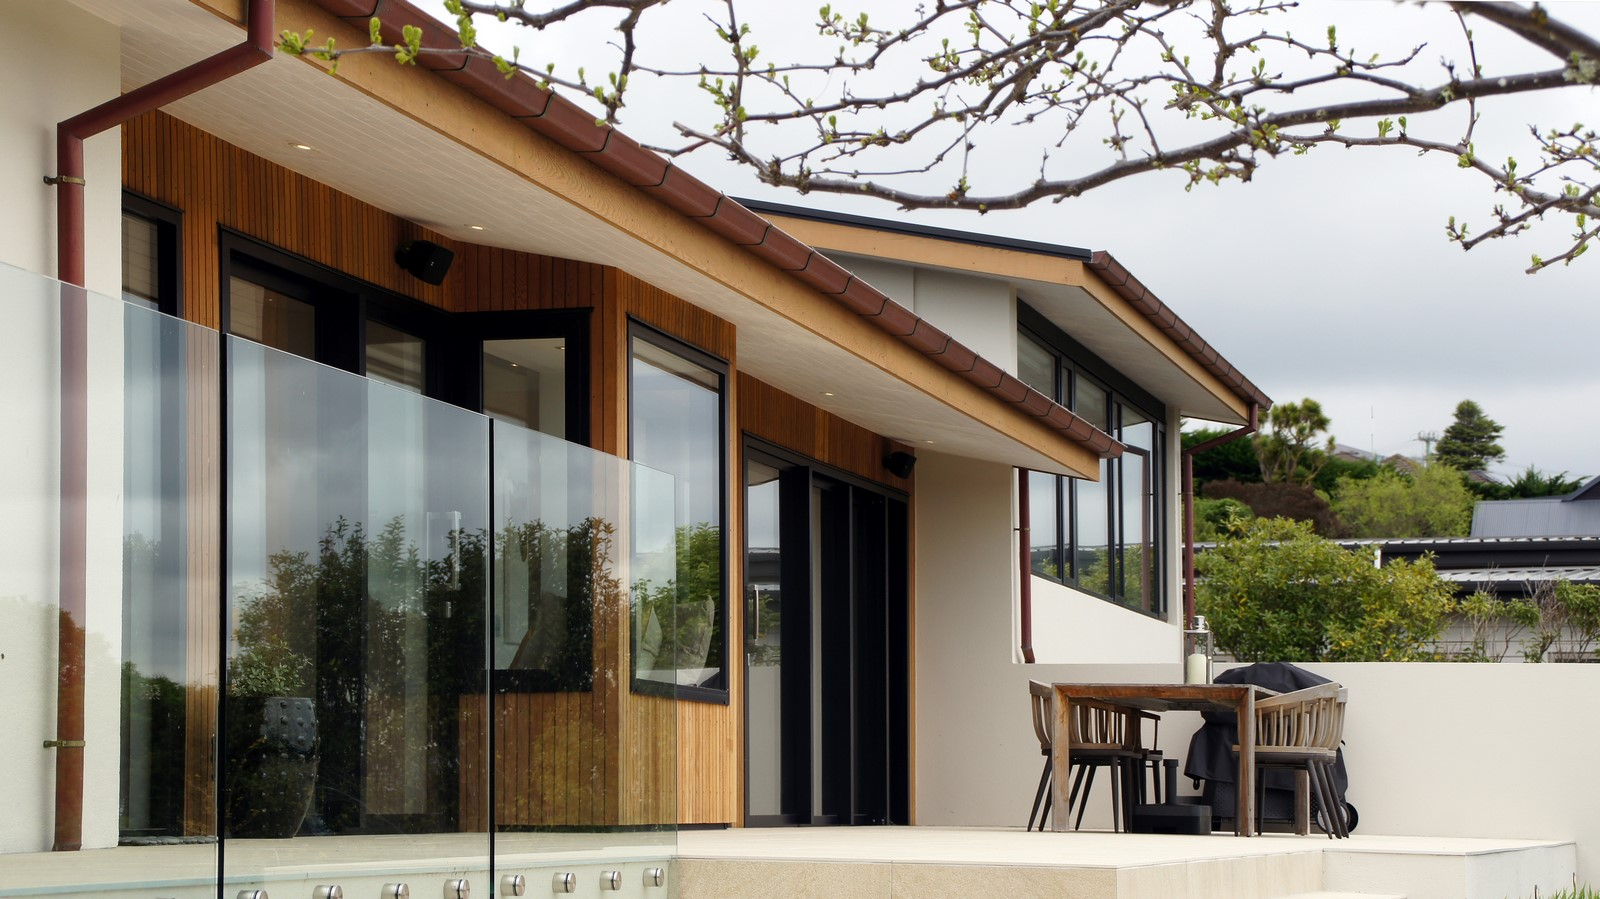 Mount Pleasant House Additions by Borrmeister Architects Ltd - Sheet1